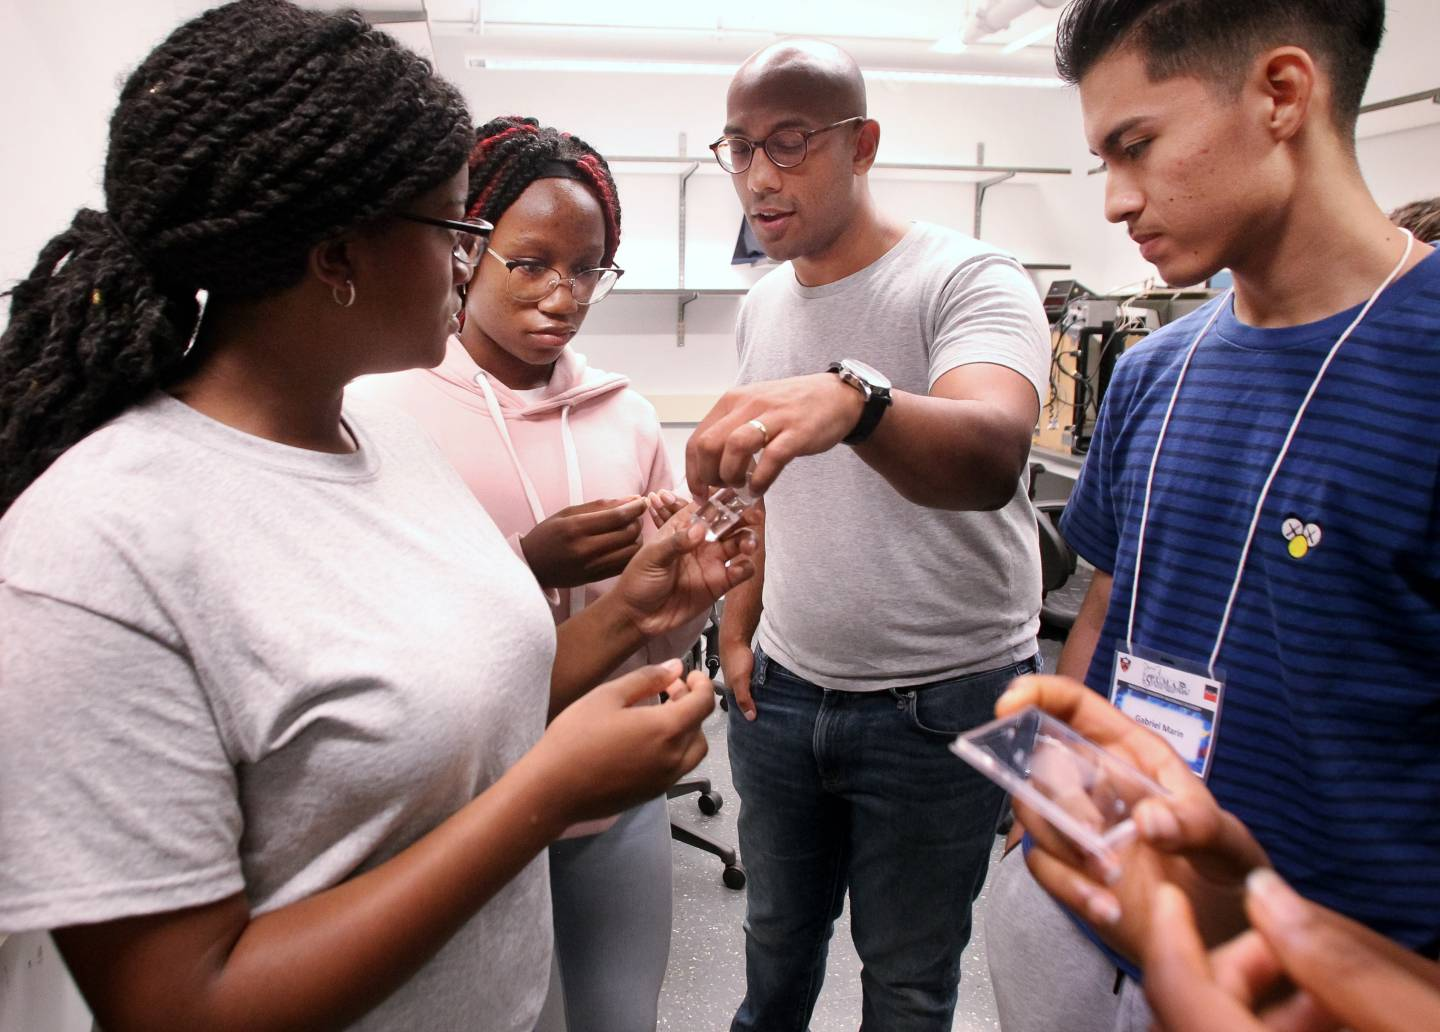 High school students connect materials science to future careers and global challenges